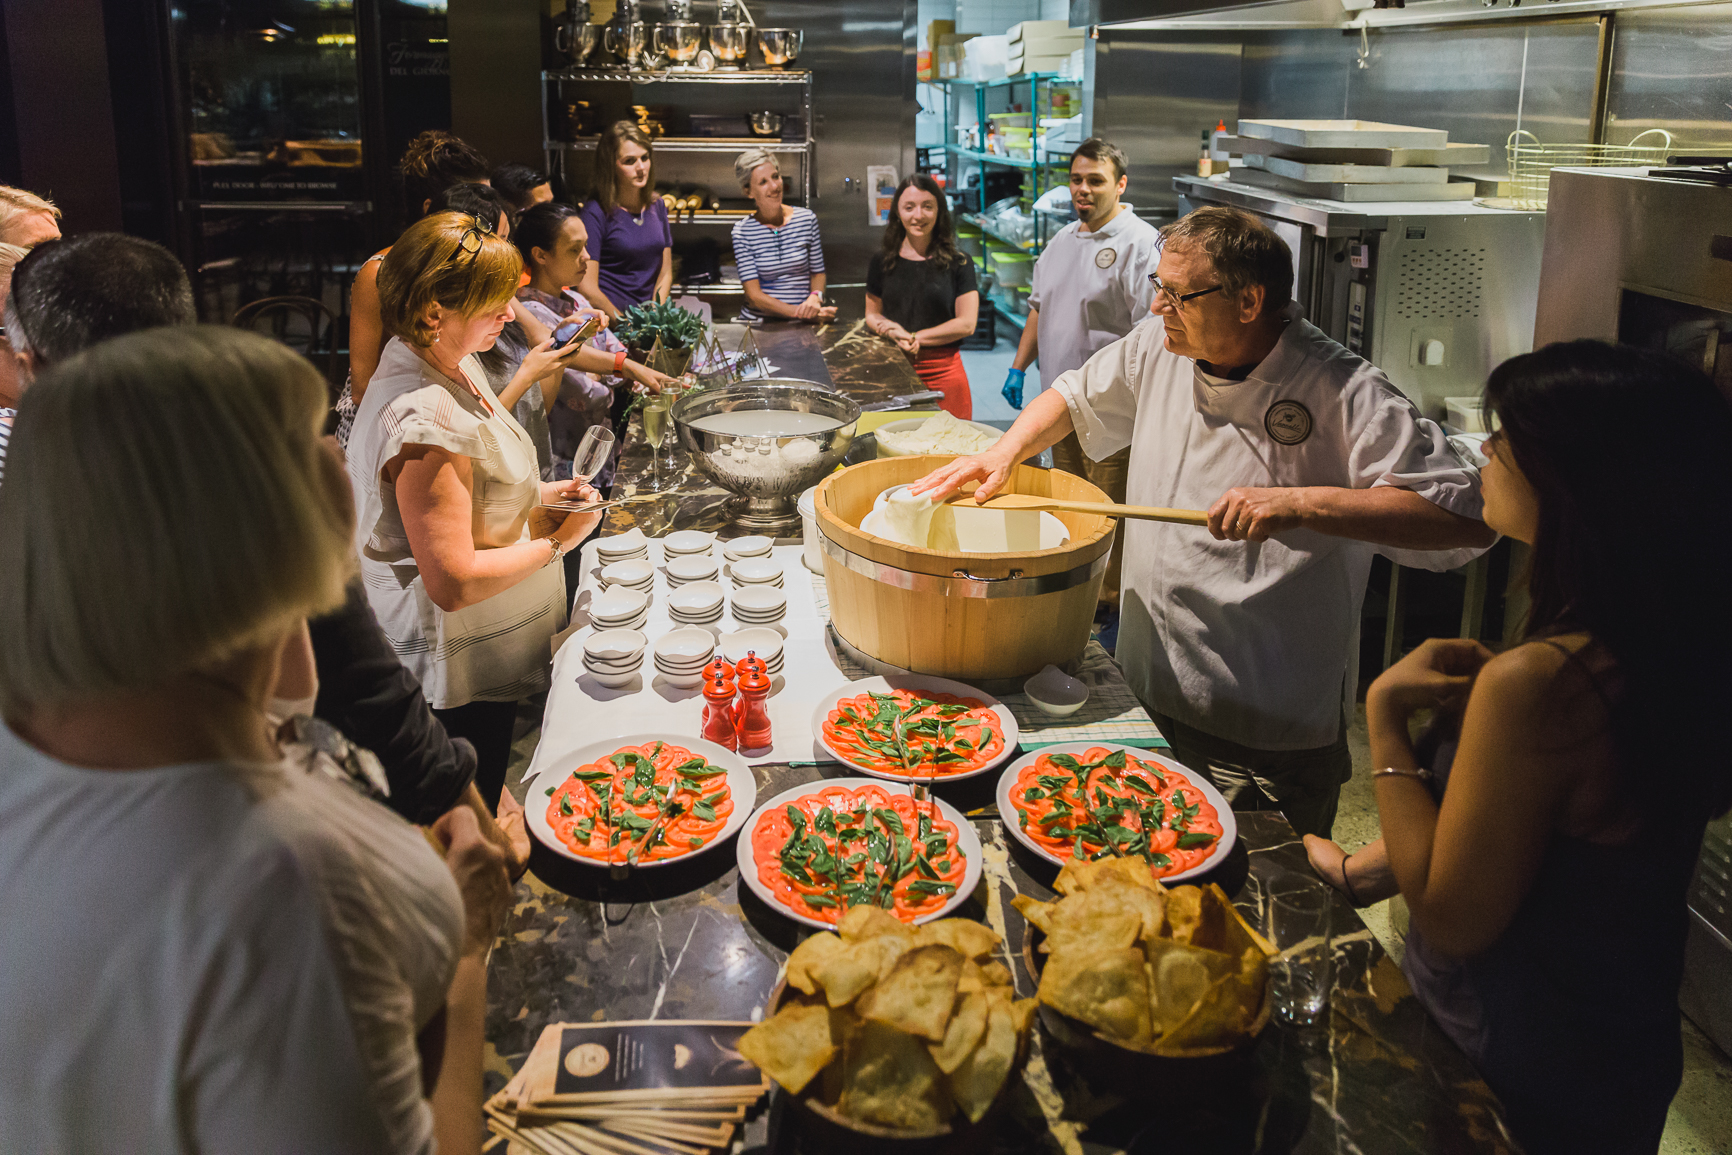 Food And Wine Experiences For Travel Groups - Doltone House